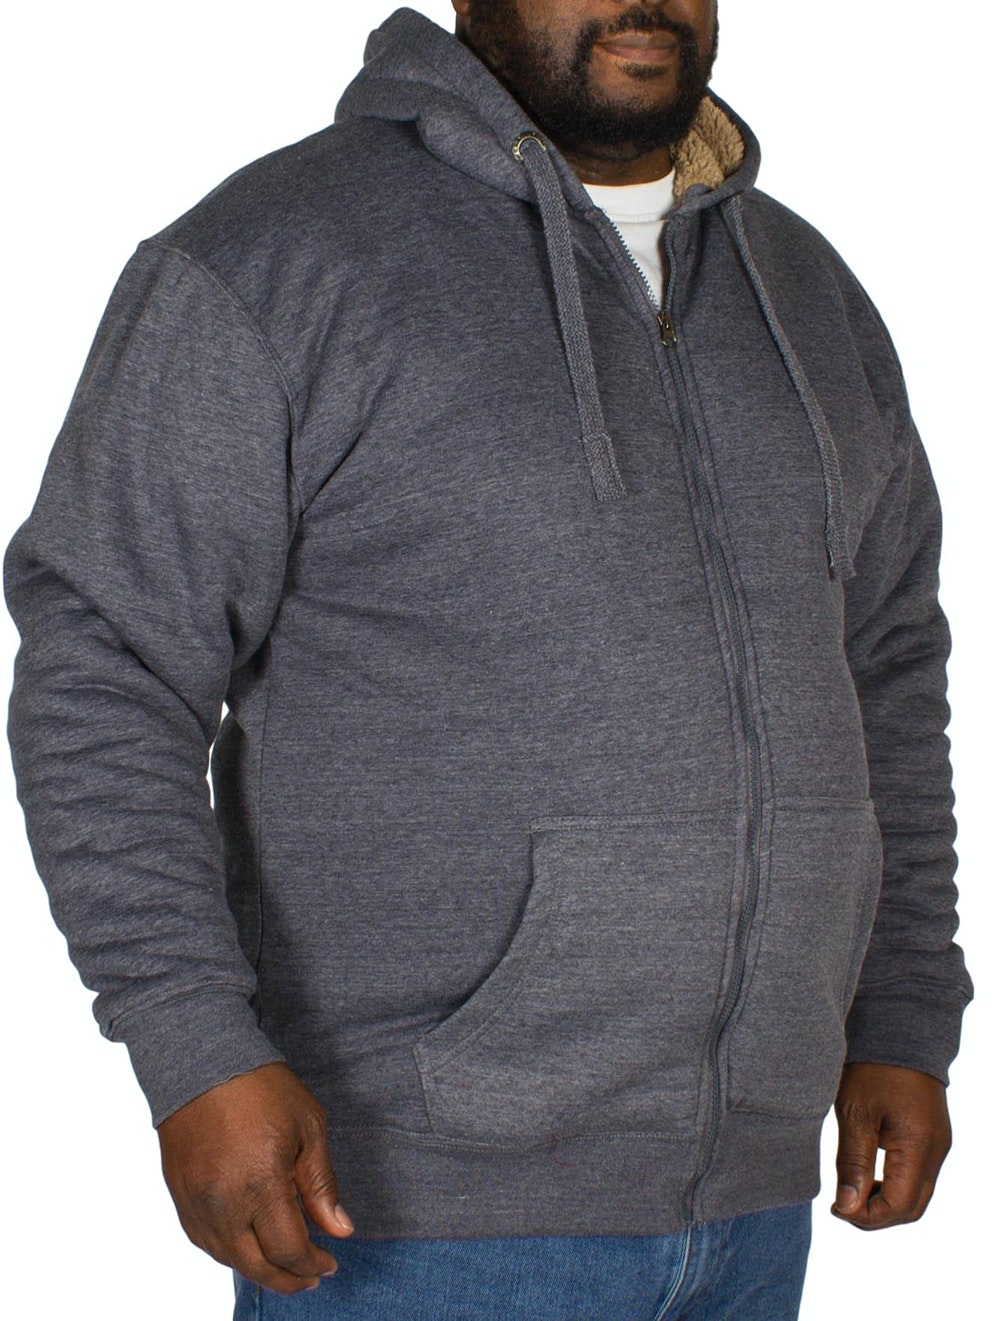 KAM Sherpa Lined Hoody Denim